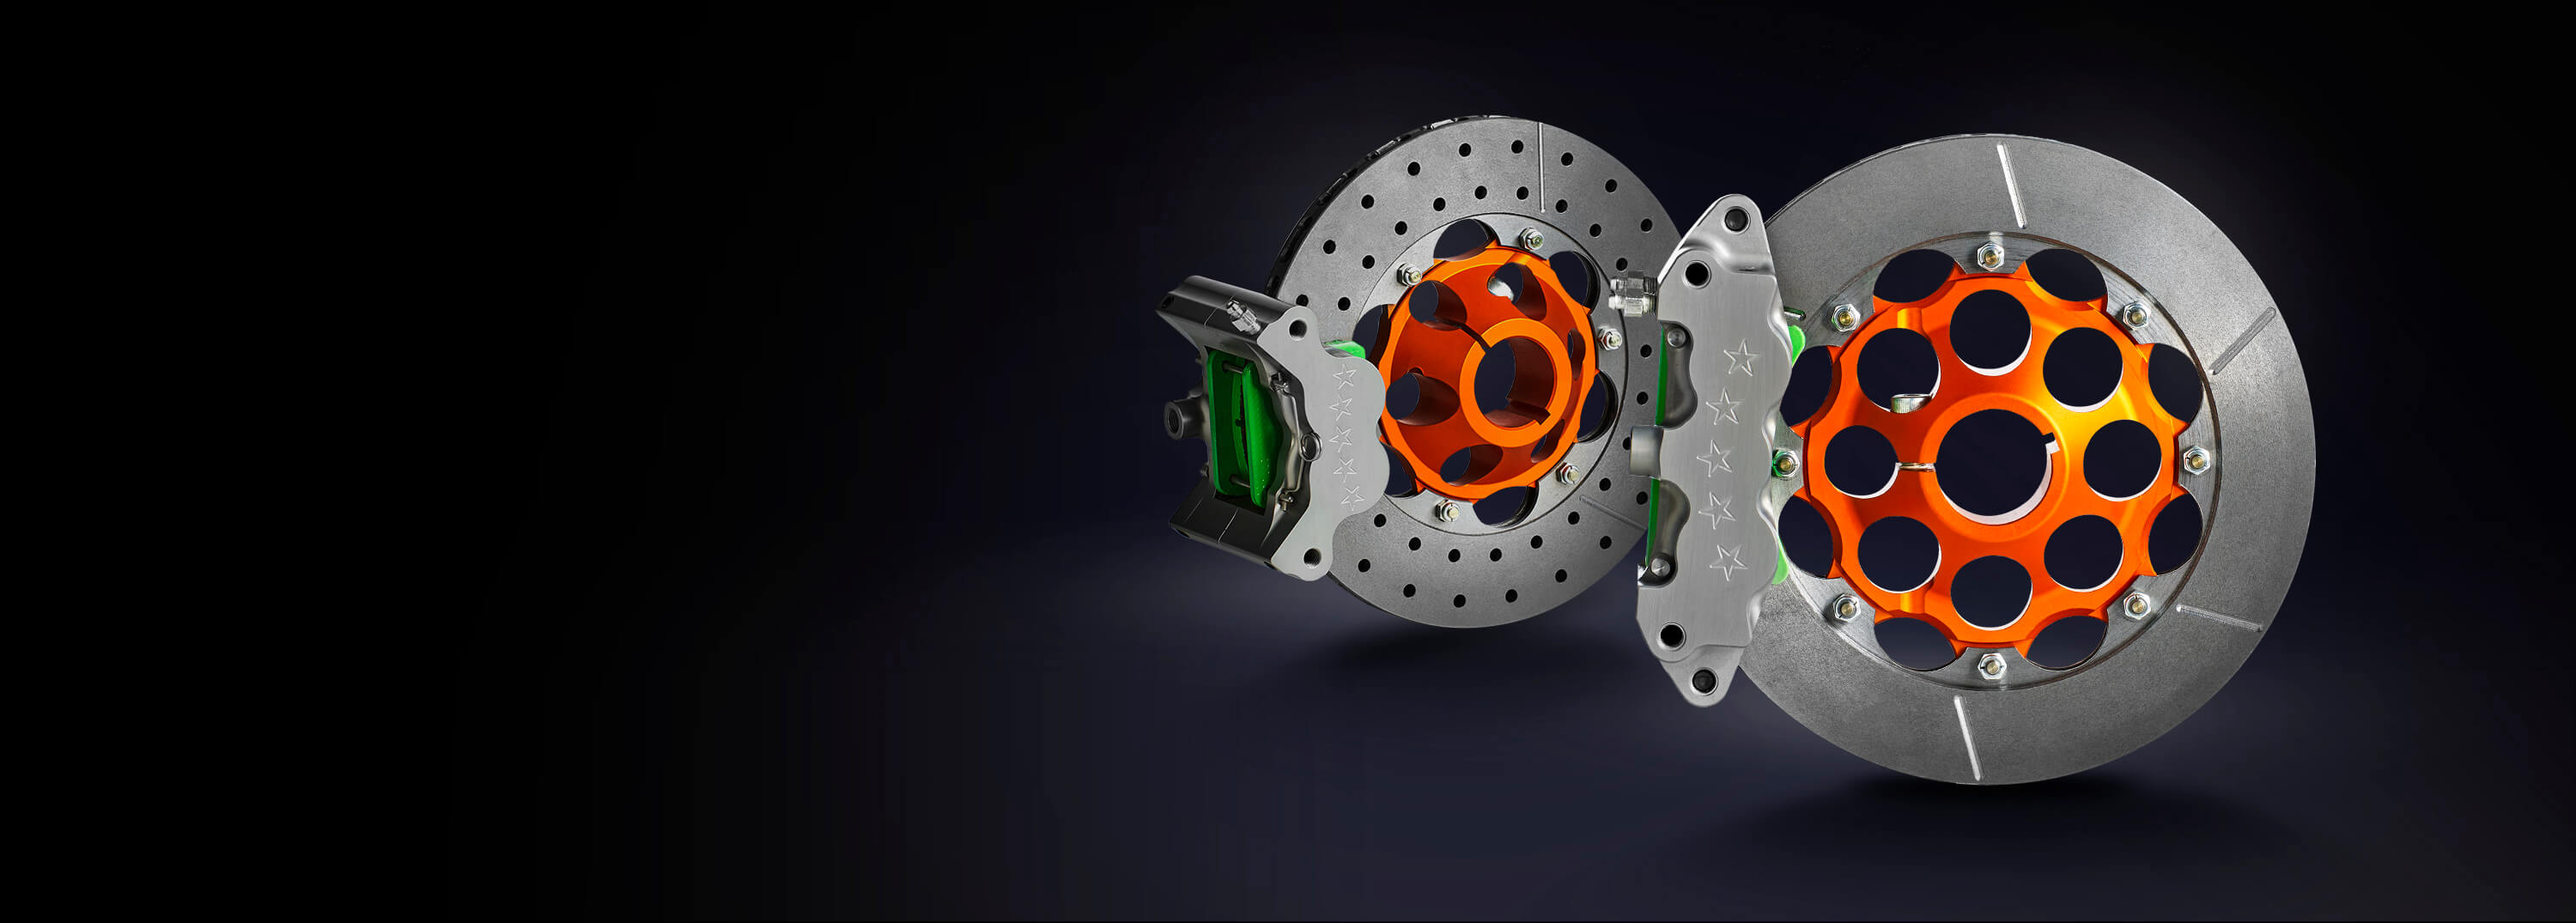 An image of brake components that we manufacture at Anderson Karts